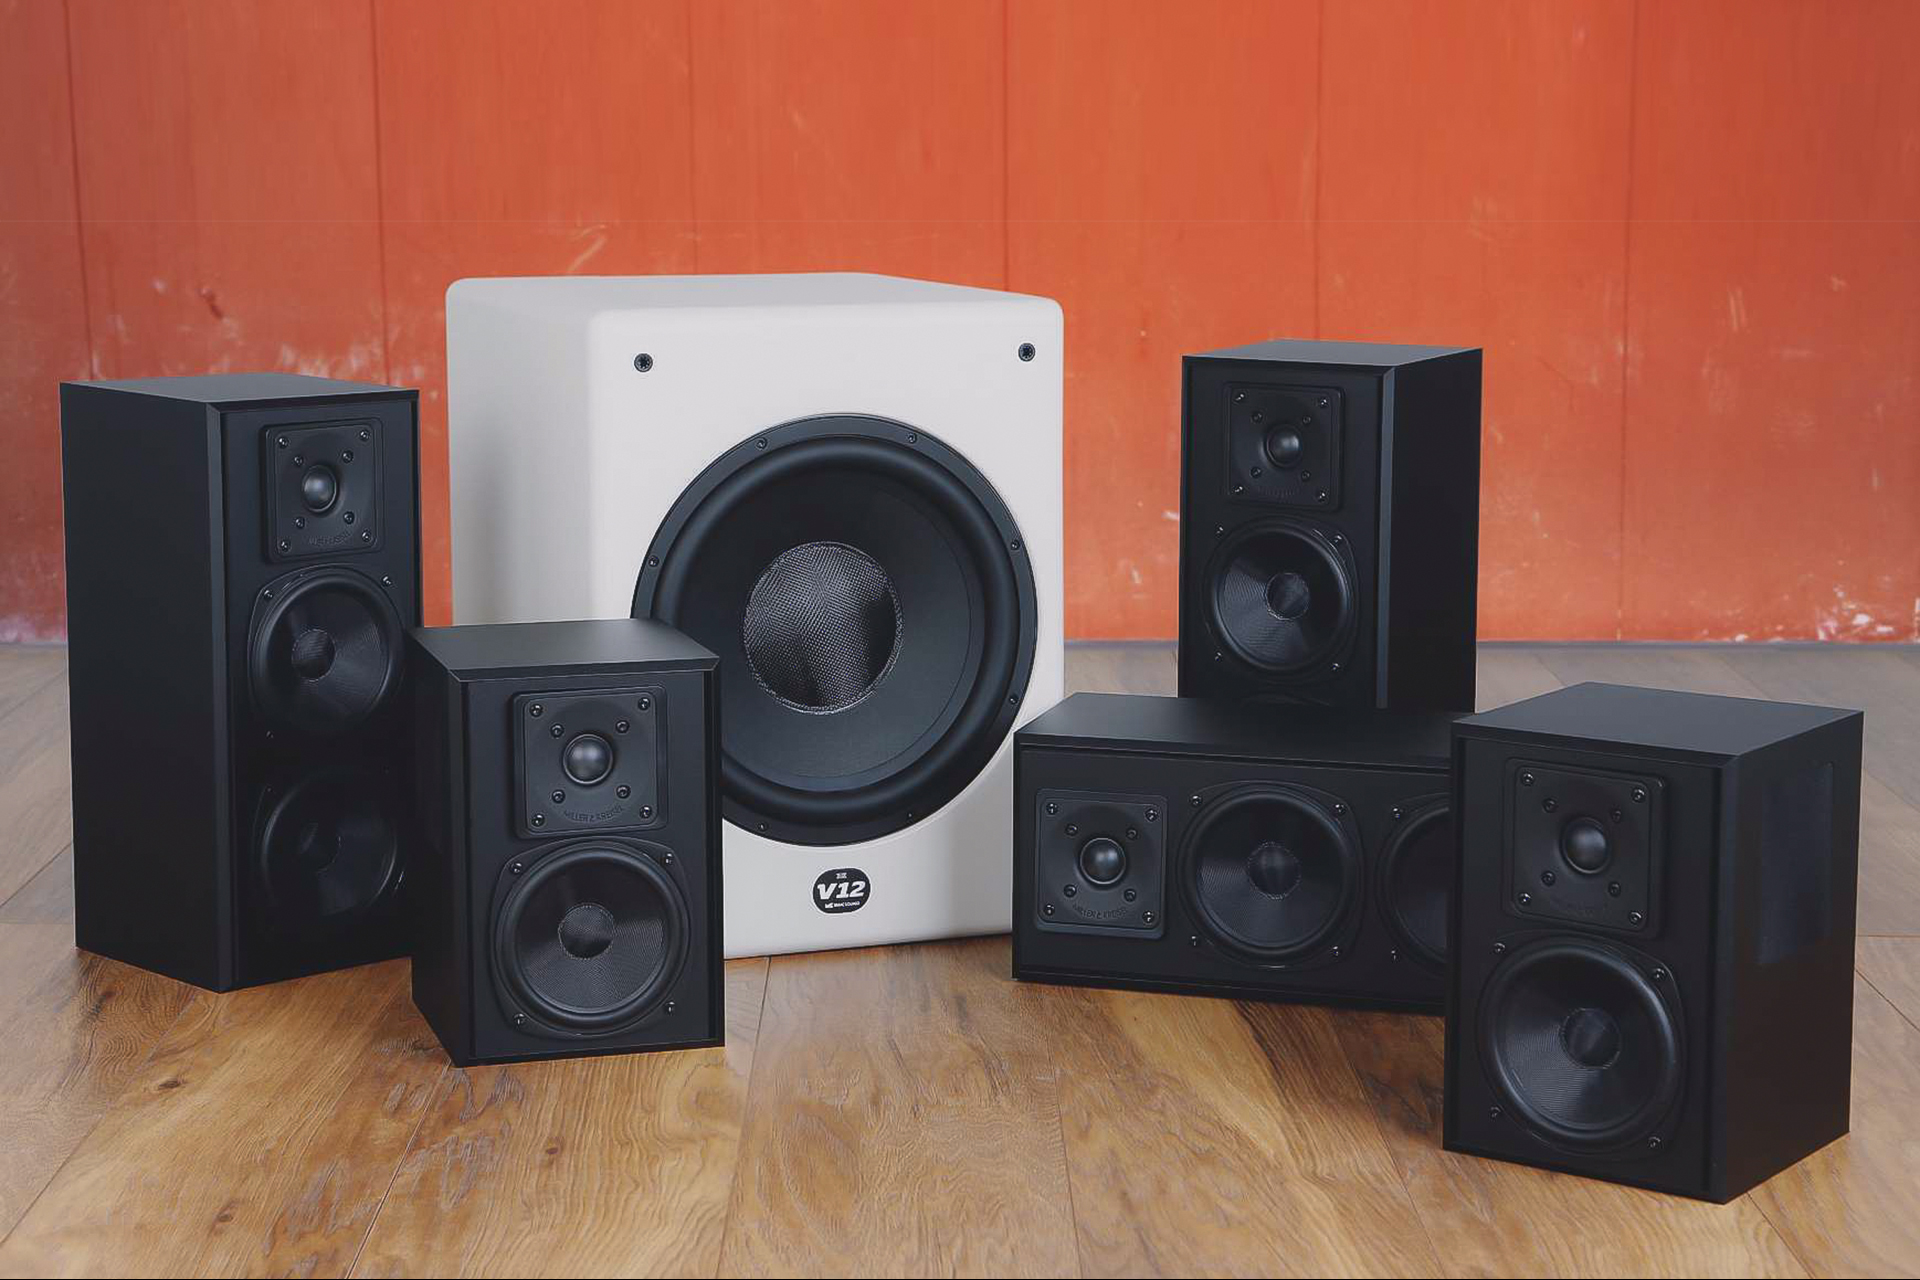 M&K SOUND 5.1 Home Cinema System